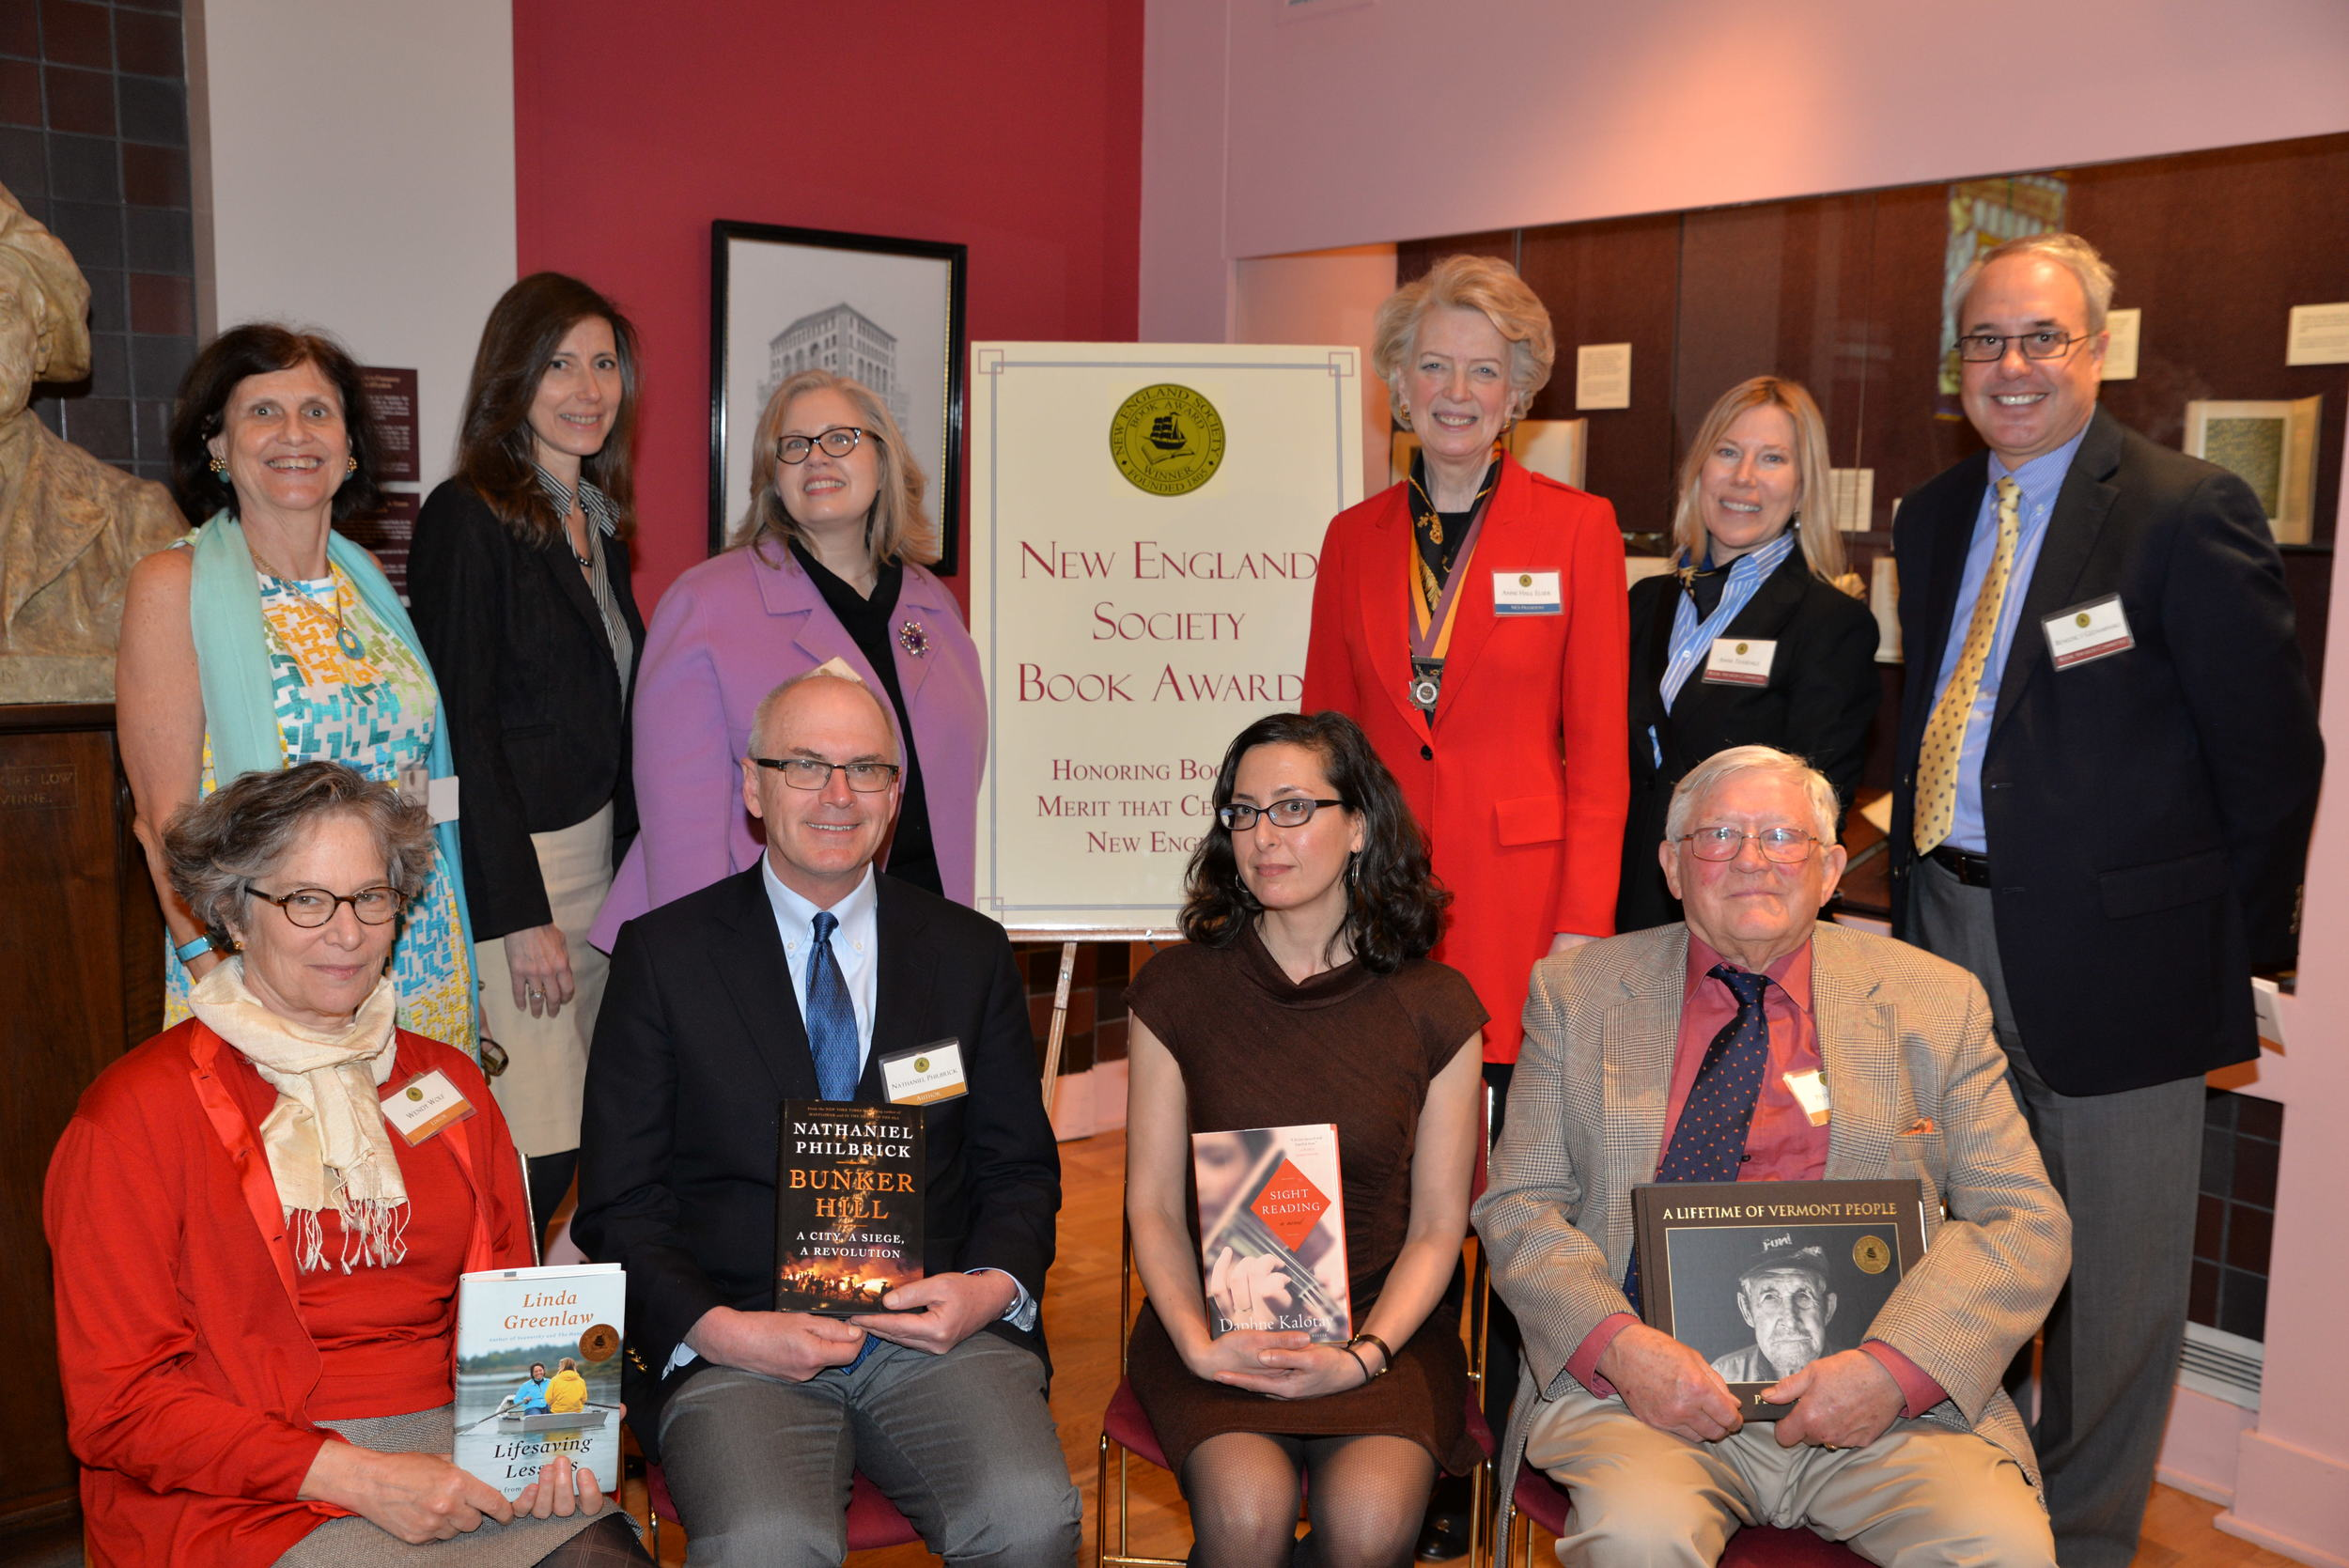 2014 Book Awards Luncheon | April 16, 2014 | The Grolier Club